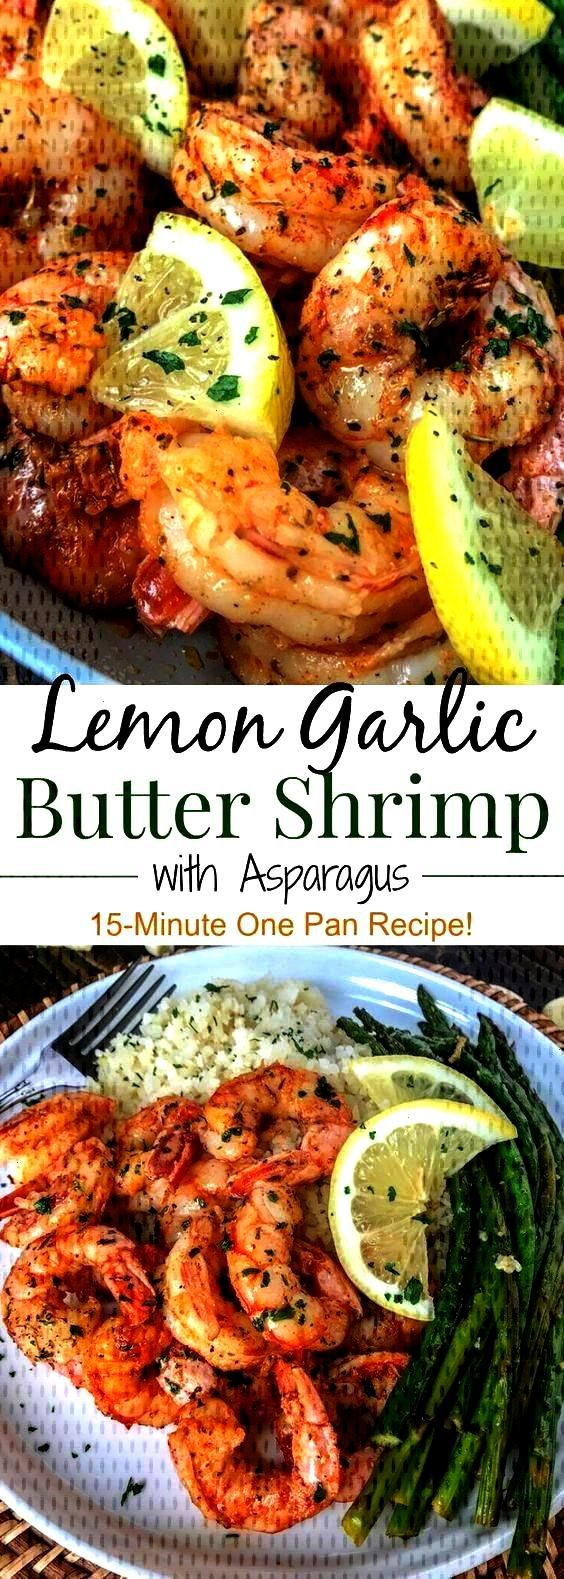 Butter Shrimp with Asparagus - Butter shrimp with cauliflower rice and green beans -Lemon Garlic